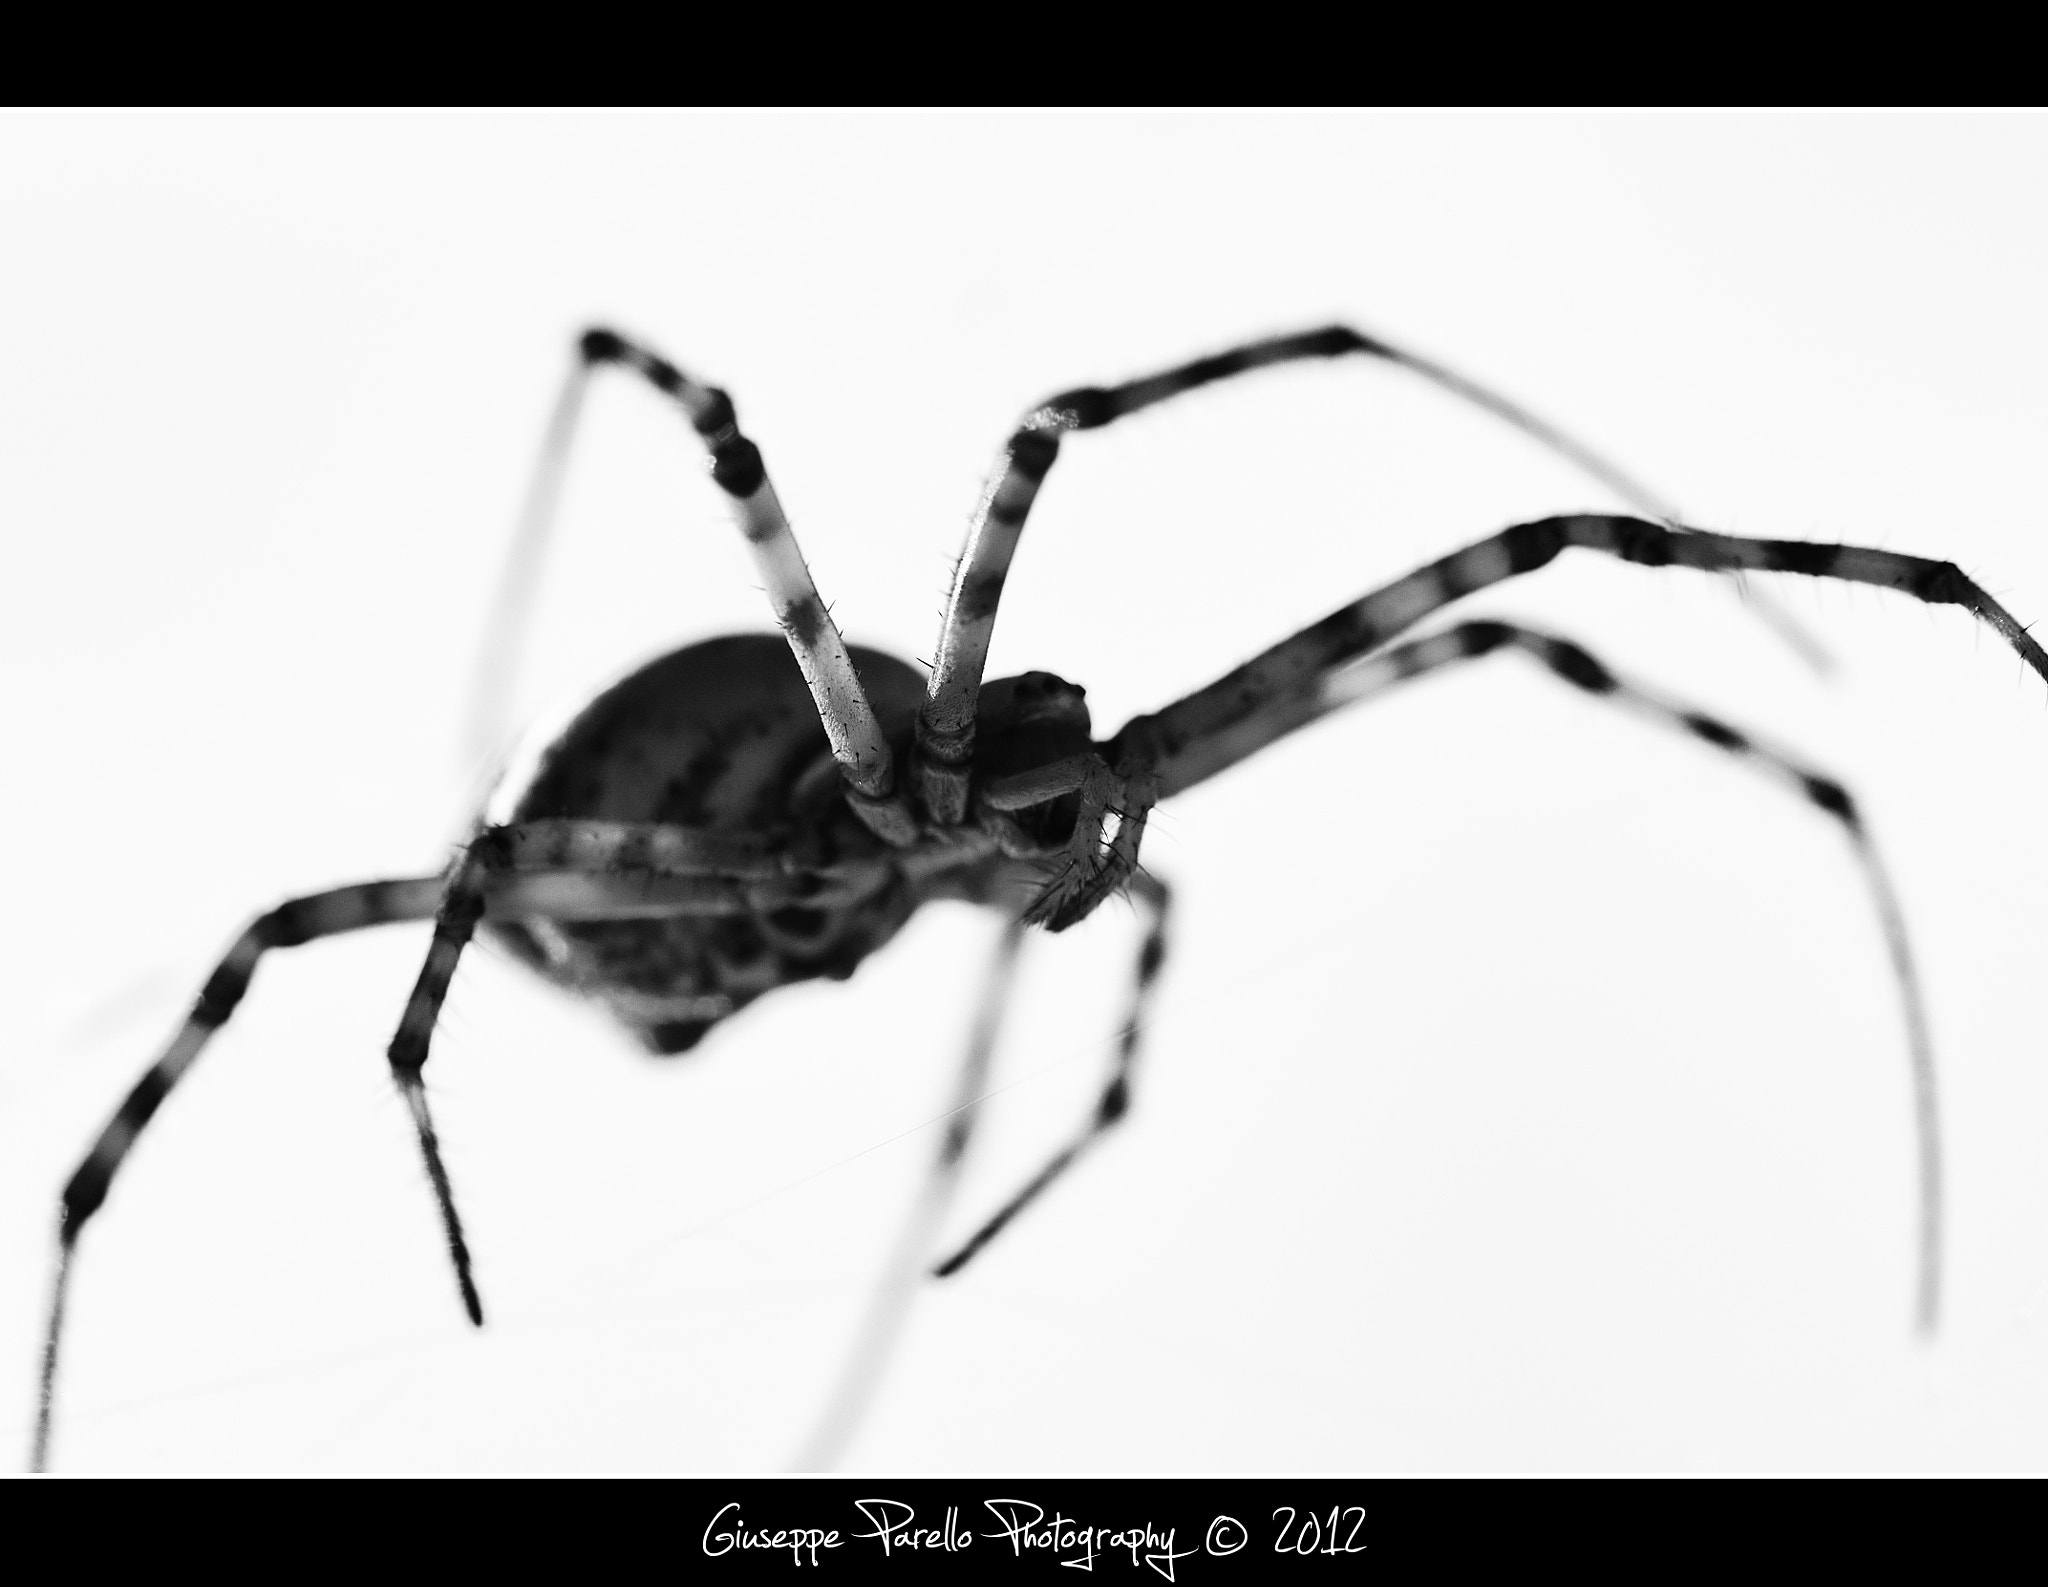 Photograph Spider silhouette by Giuseppe Parello on 500px